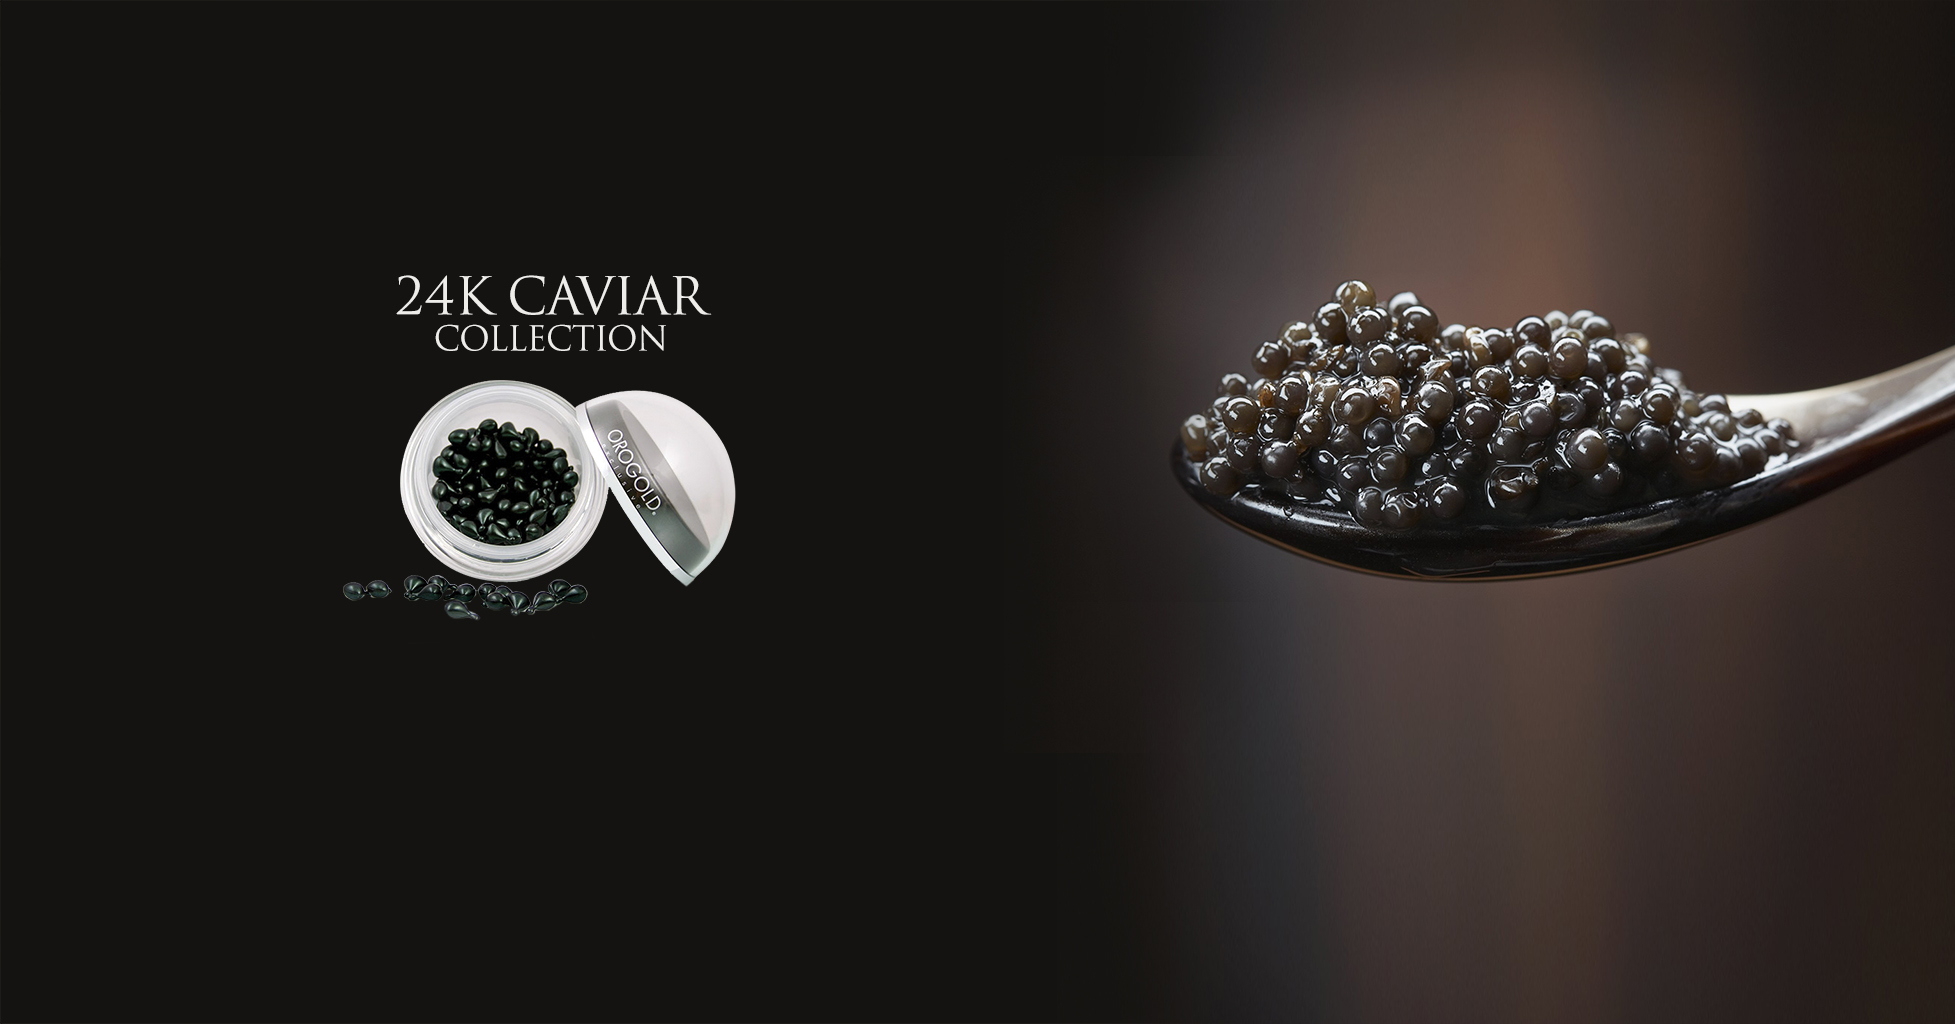 24K Caviar Collection